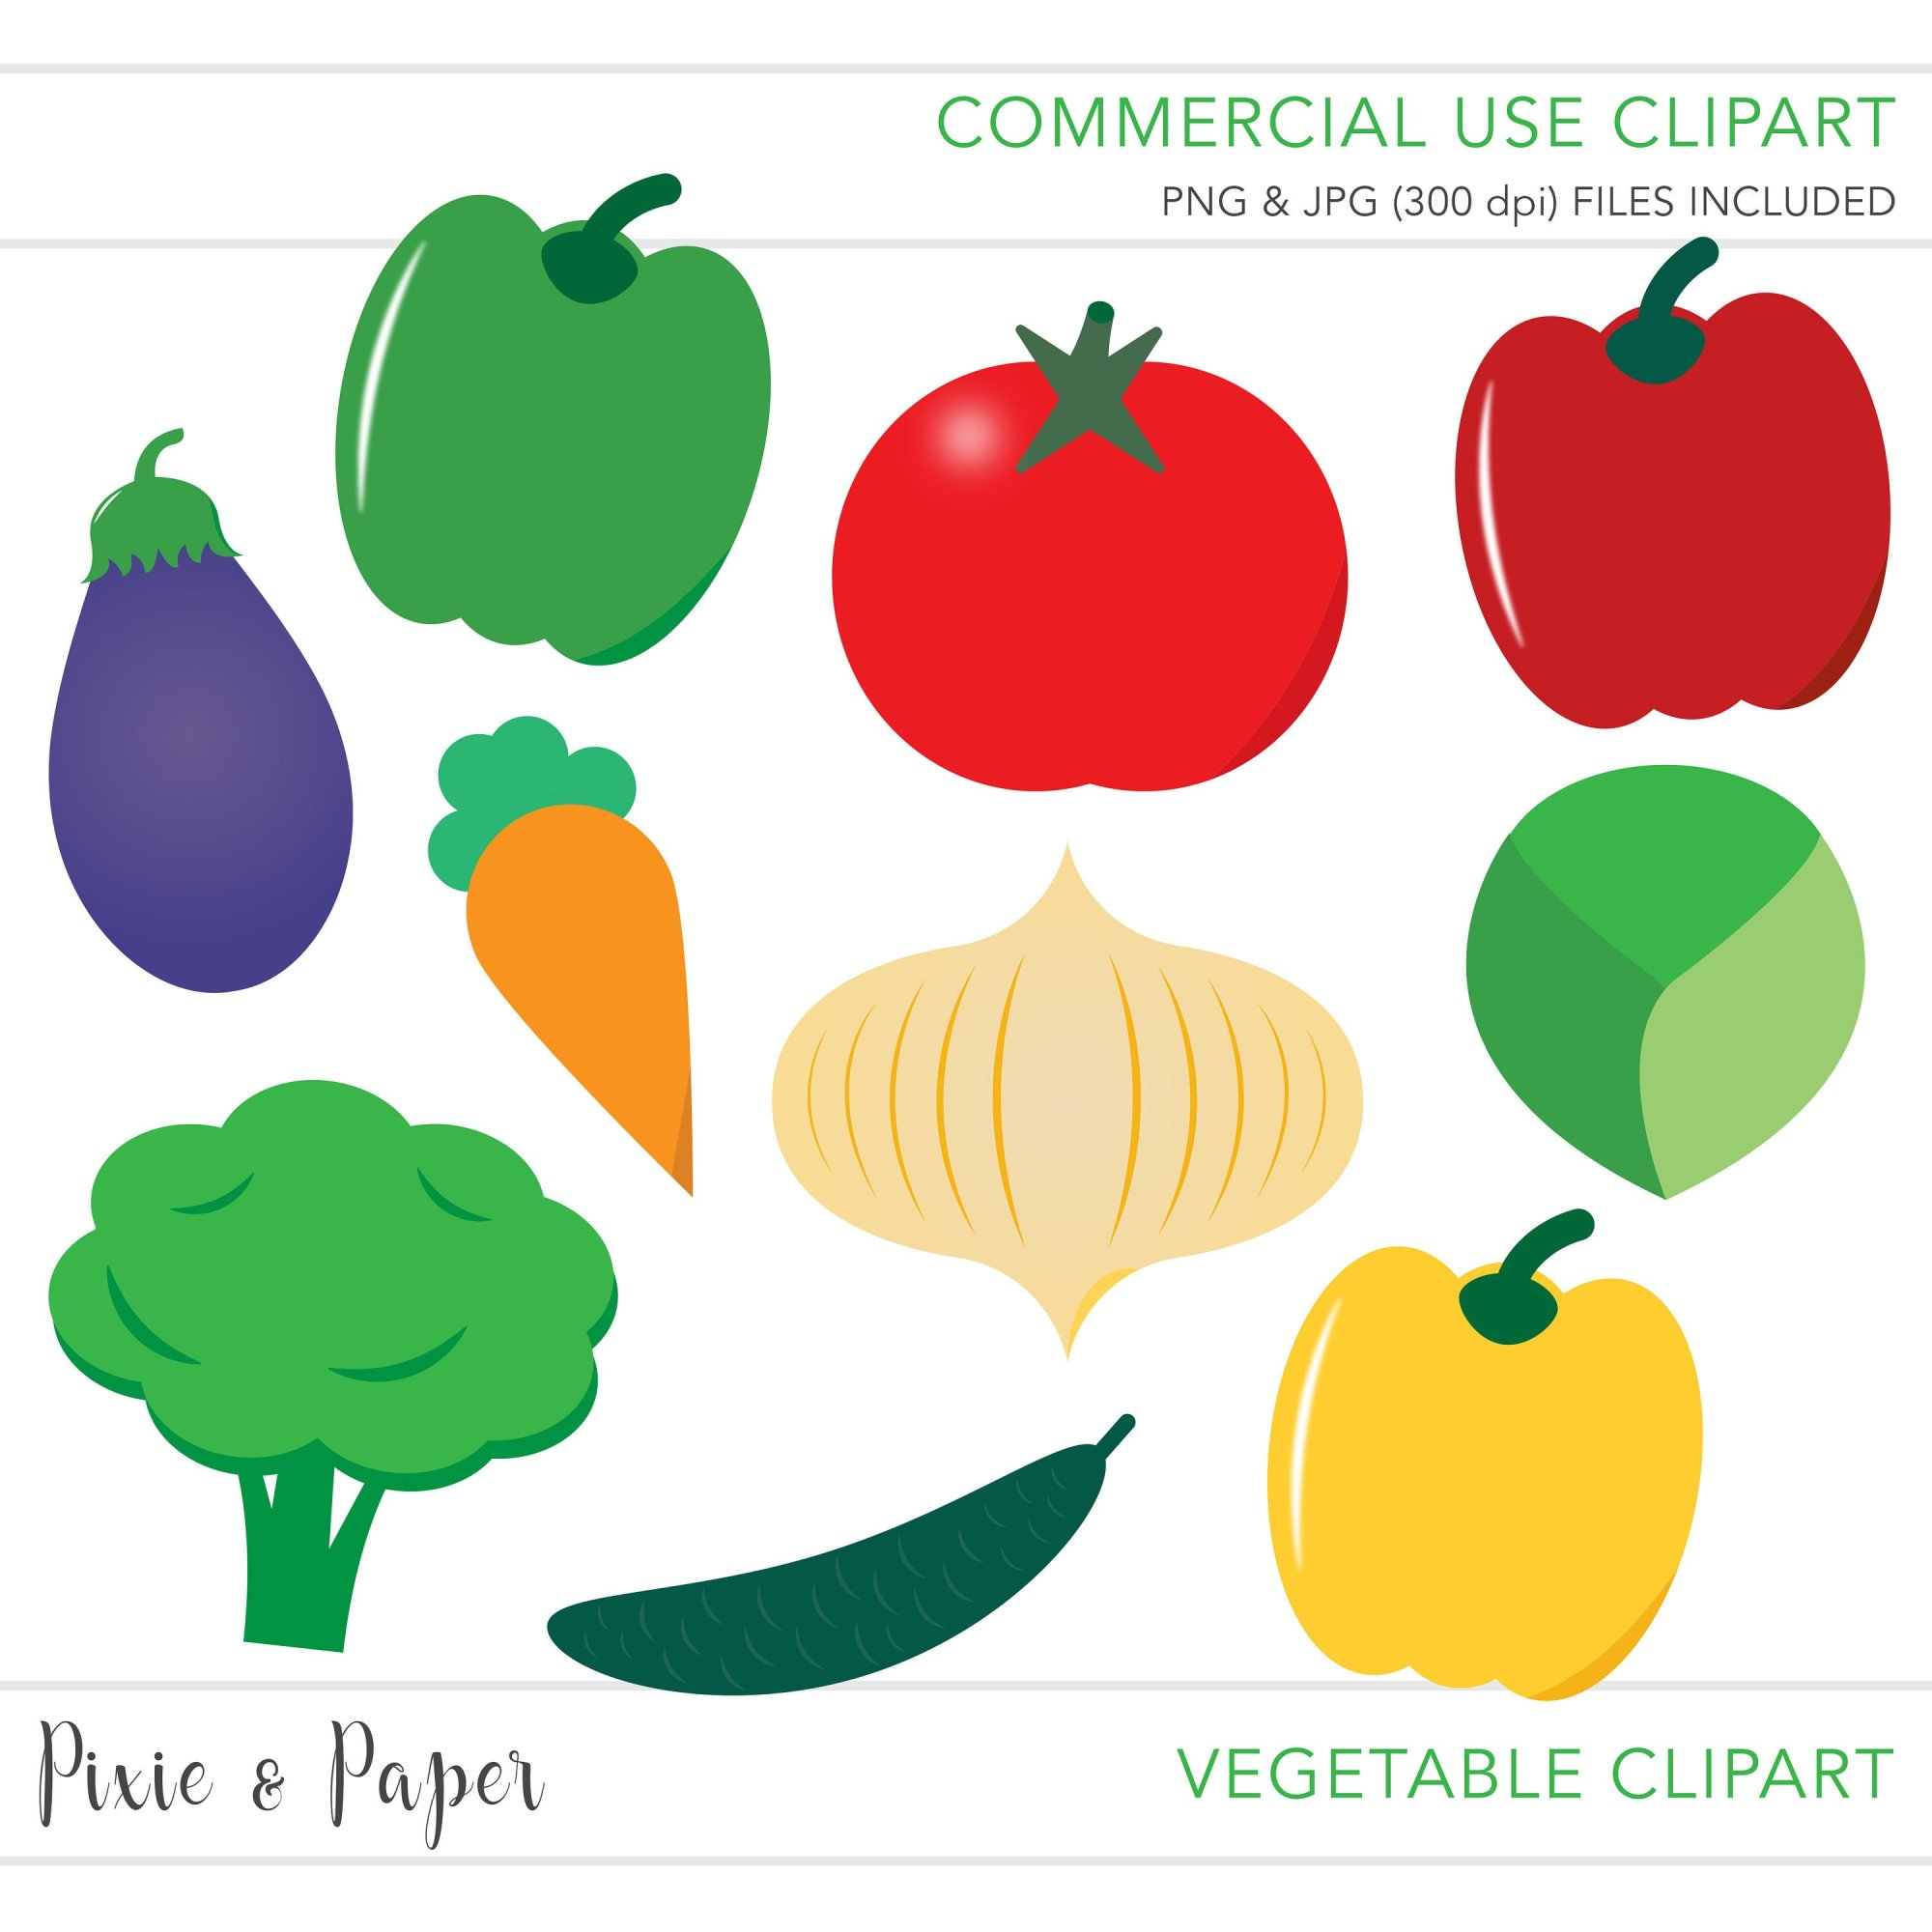 hight resolution of 3000x3000 commercial use clipart commercial use clip art vegetable clipart